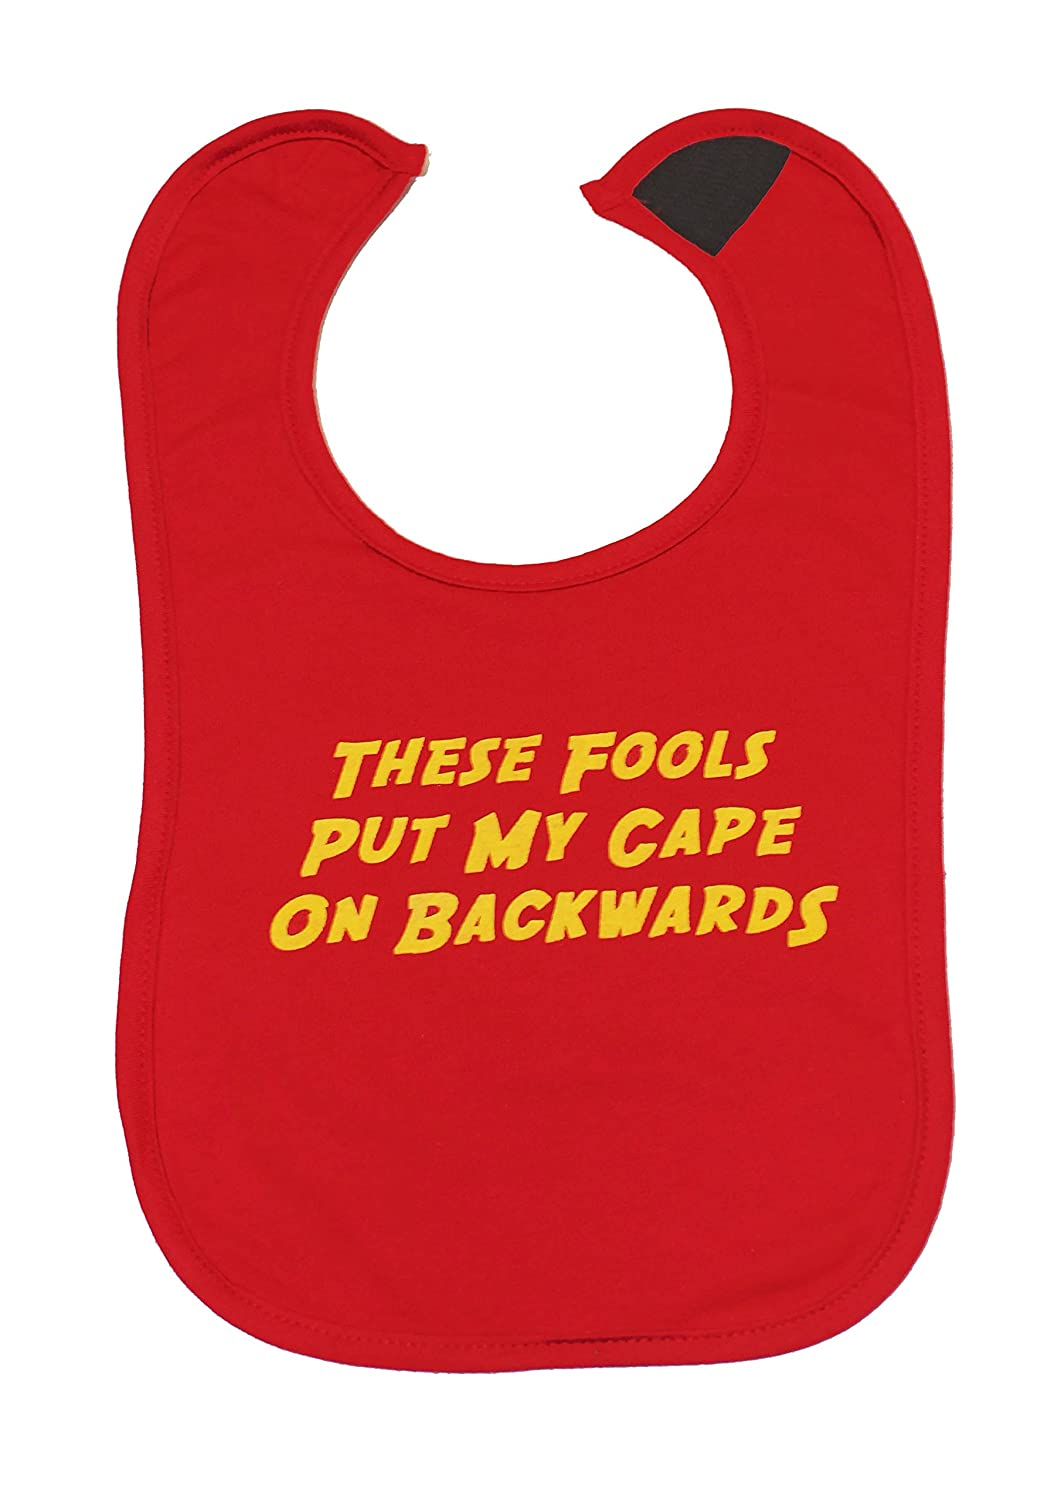 BIRTH GIFT THESE FOOLS PUT MY CAPE ON BACKWARDS Personalised Baby//Toddler Bib